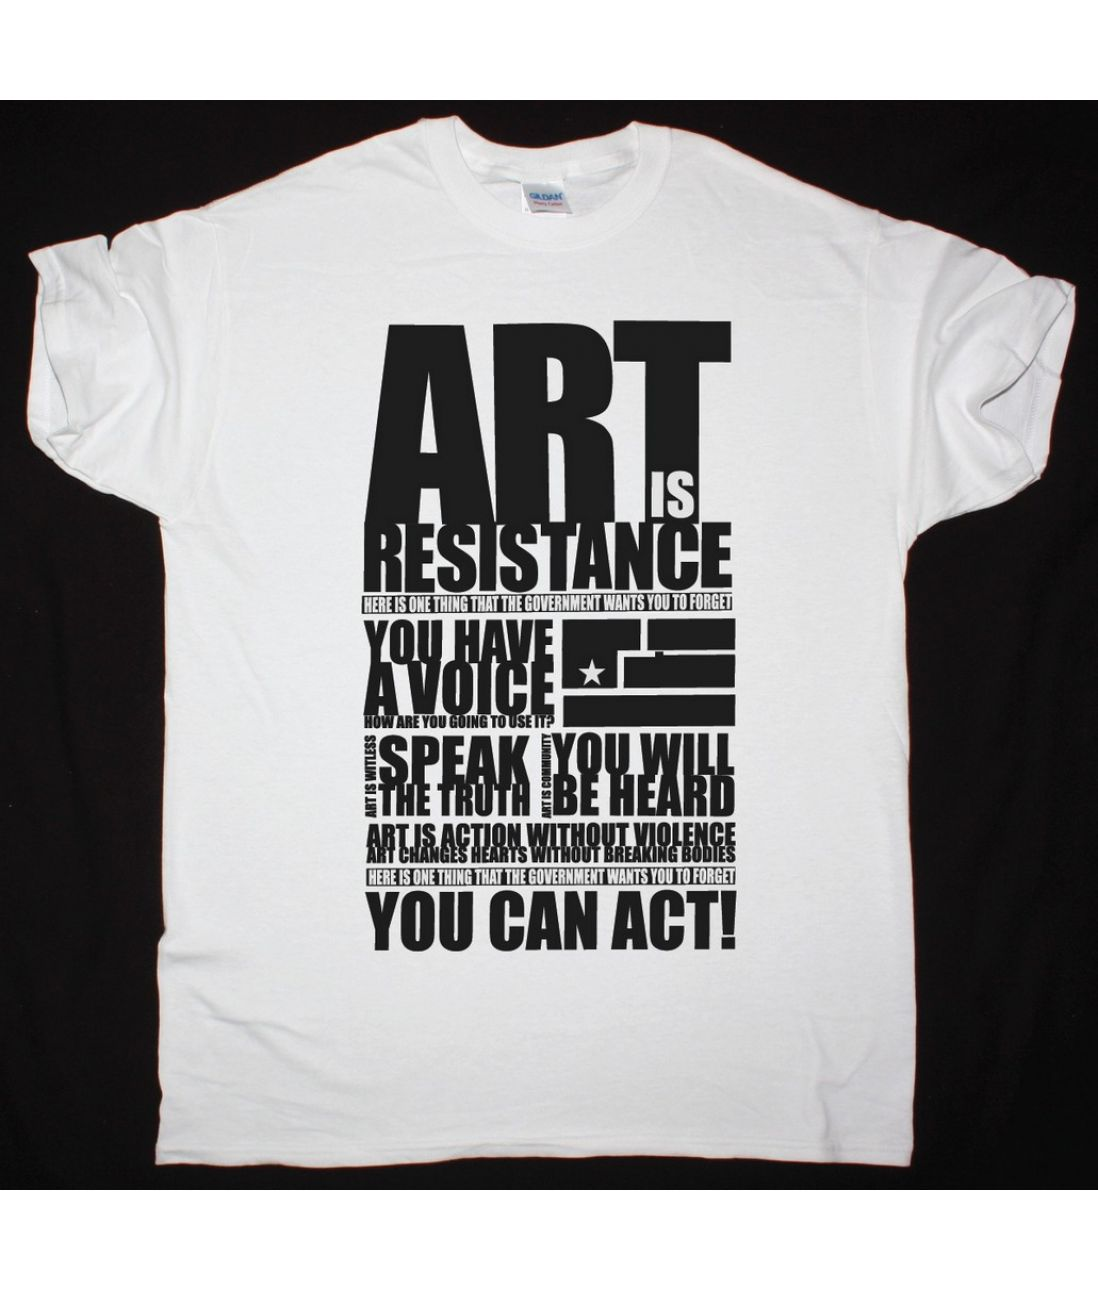 NINE INCH NAILS ART IS RESISTANCE NEW WHITE T SHIRT - Best Rock T-shirts